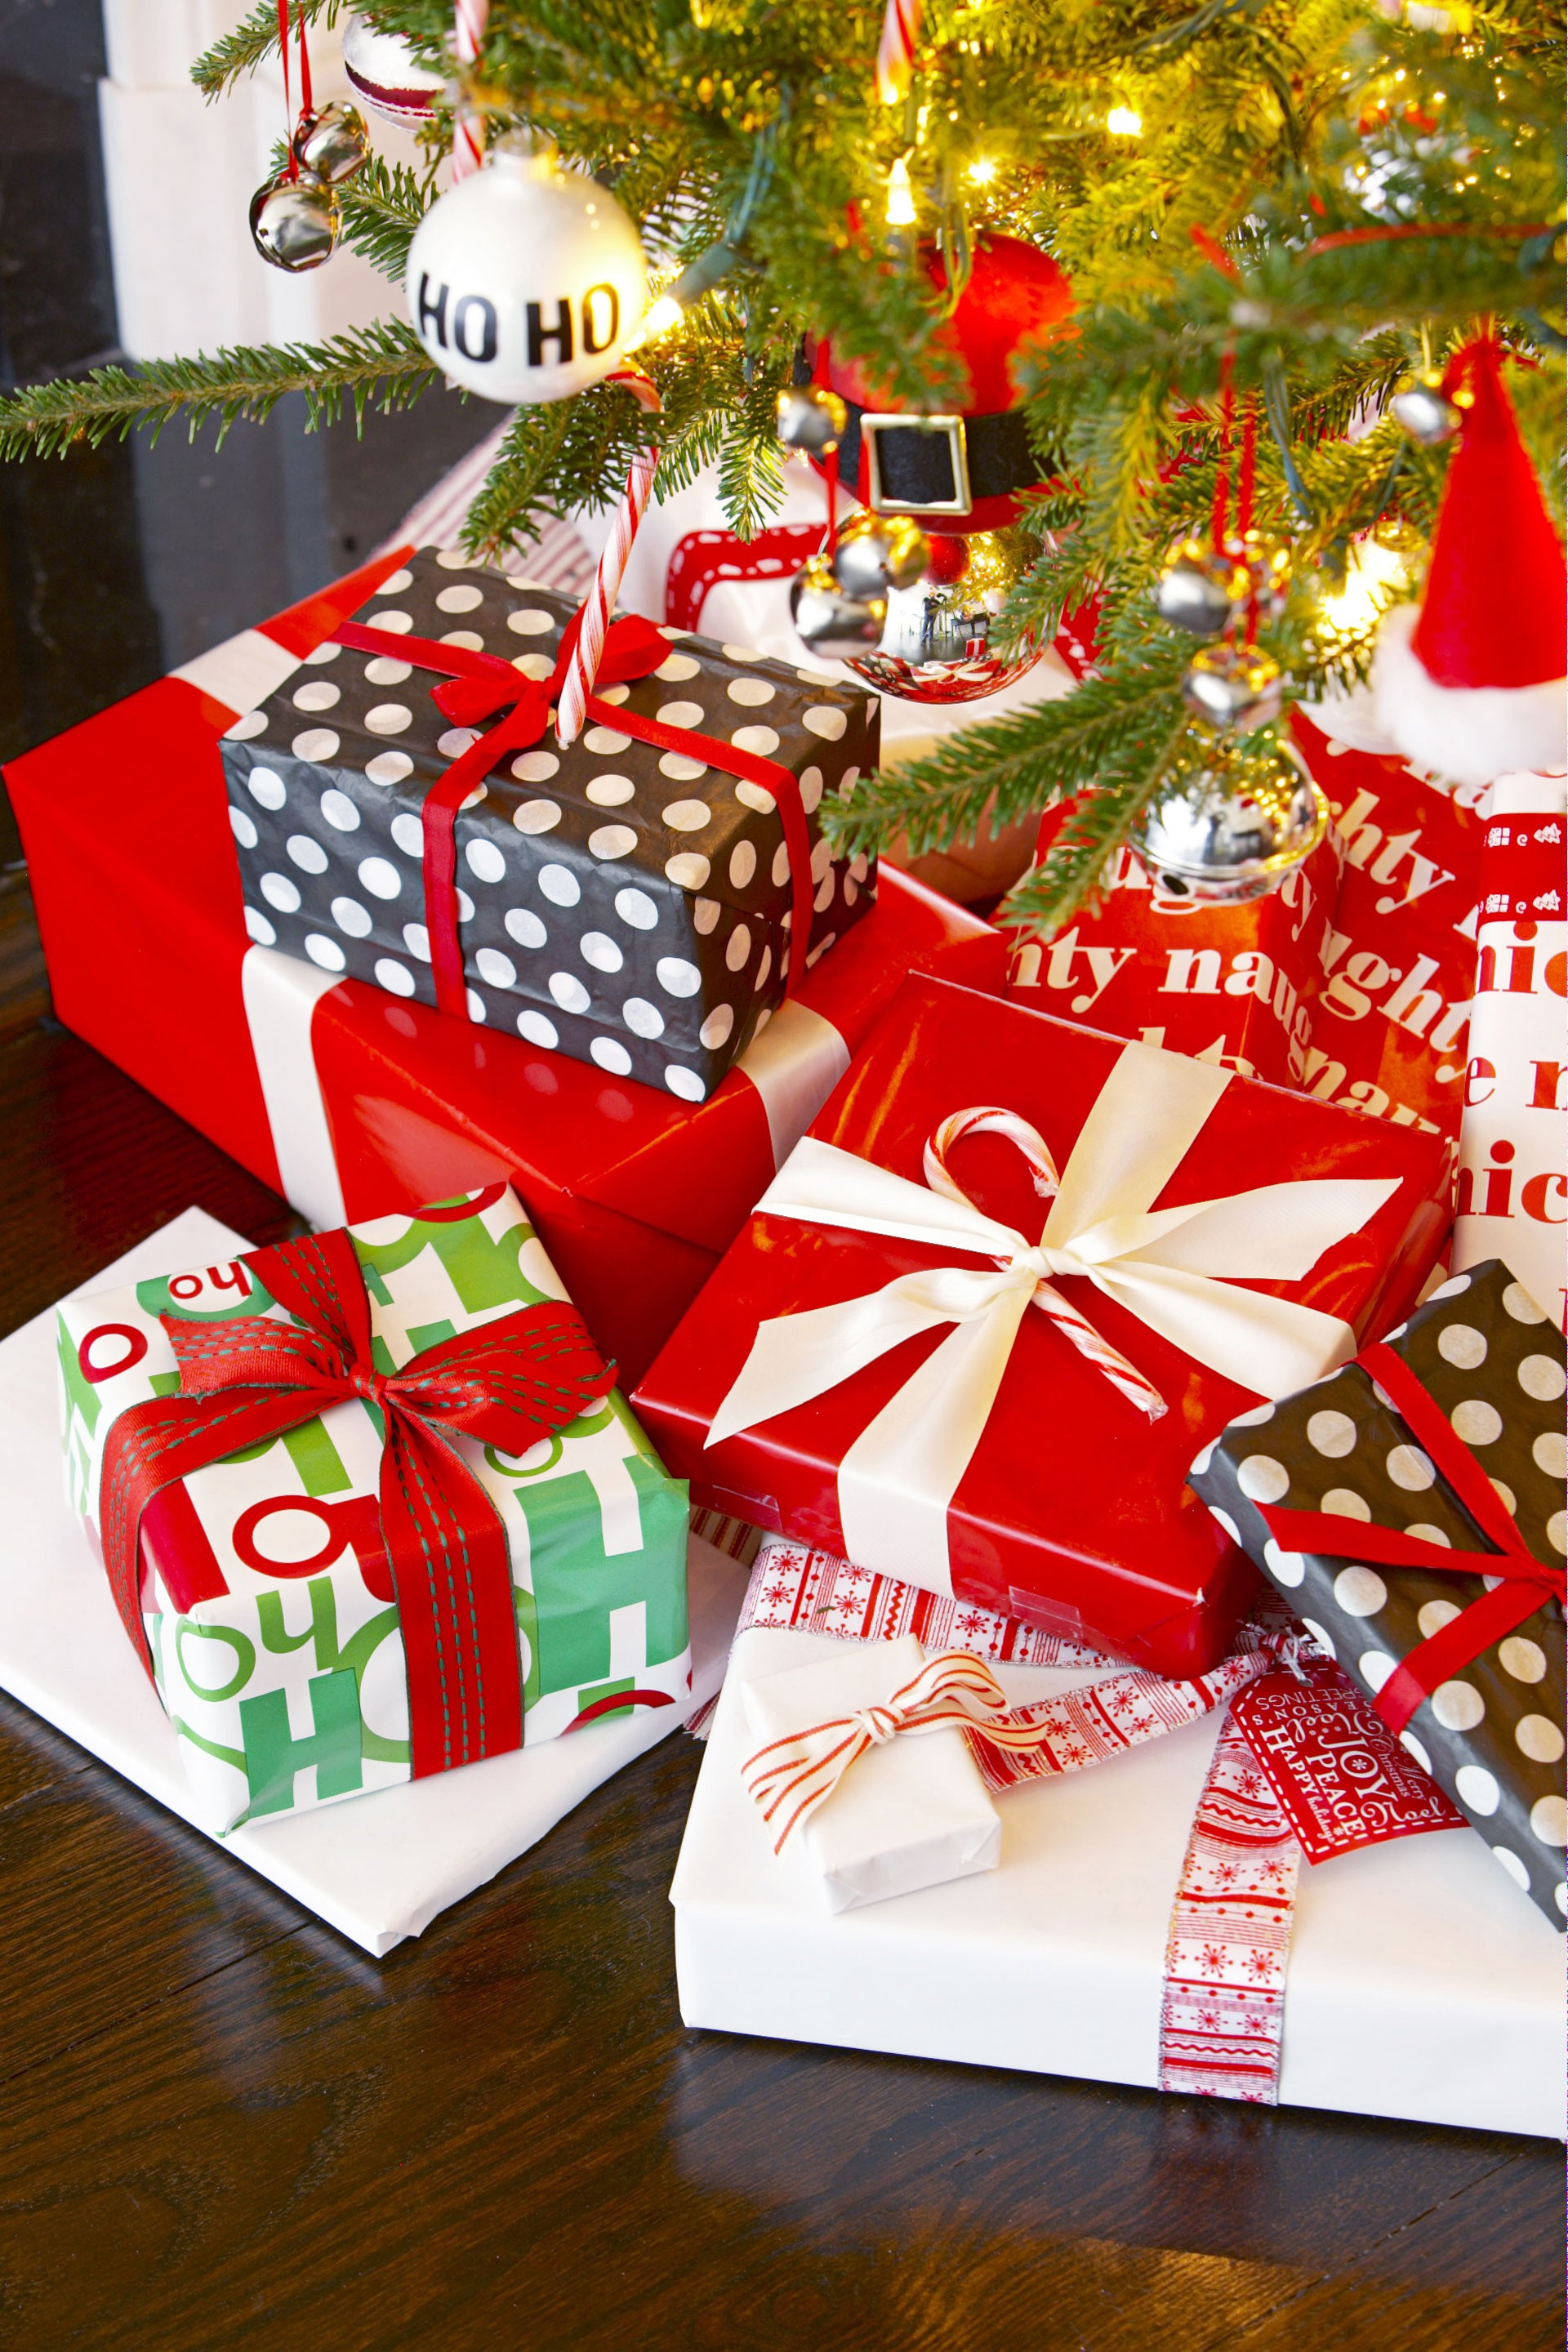 Holiday Party Gift Ideas  33 Unique Christmas Gift Wrapping Ideas DIY Holiday Gift